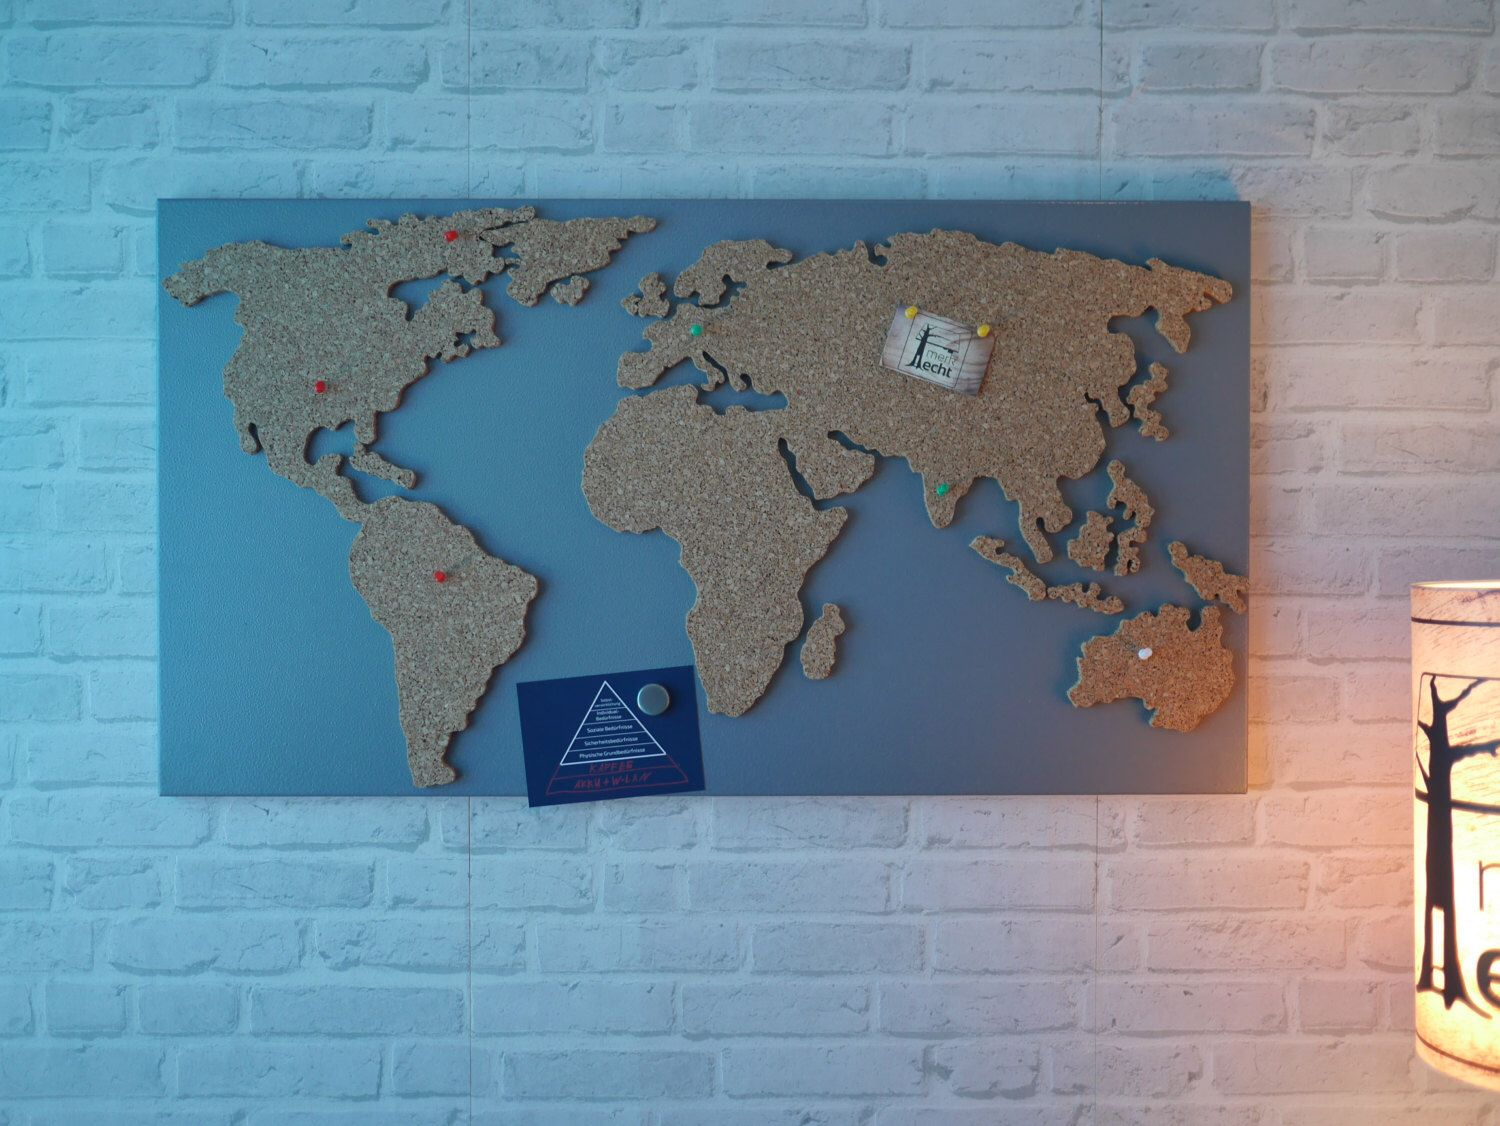 Magnetic cork pinboard as world map 40x20 inch by merkecht on etsy magnetic cork pinboard as world map 40x20 inch by merkecht on etsy https gumiabroncs Image collections